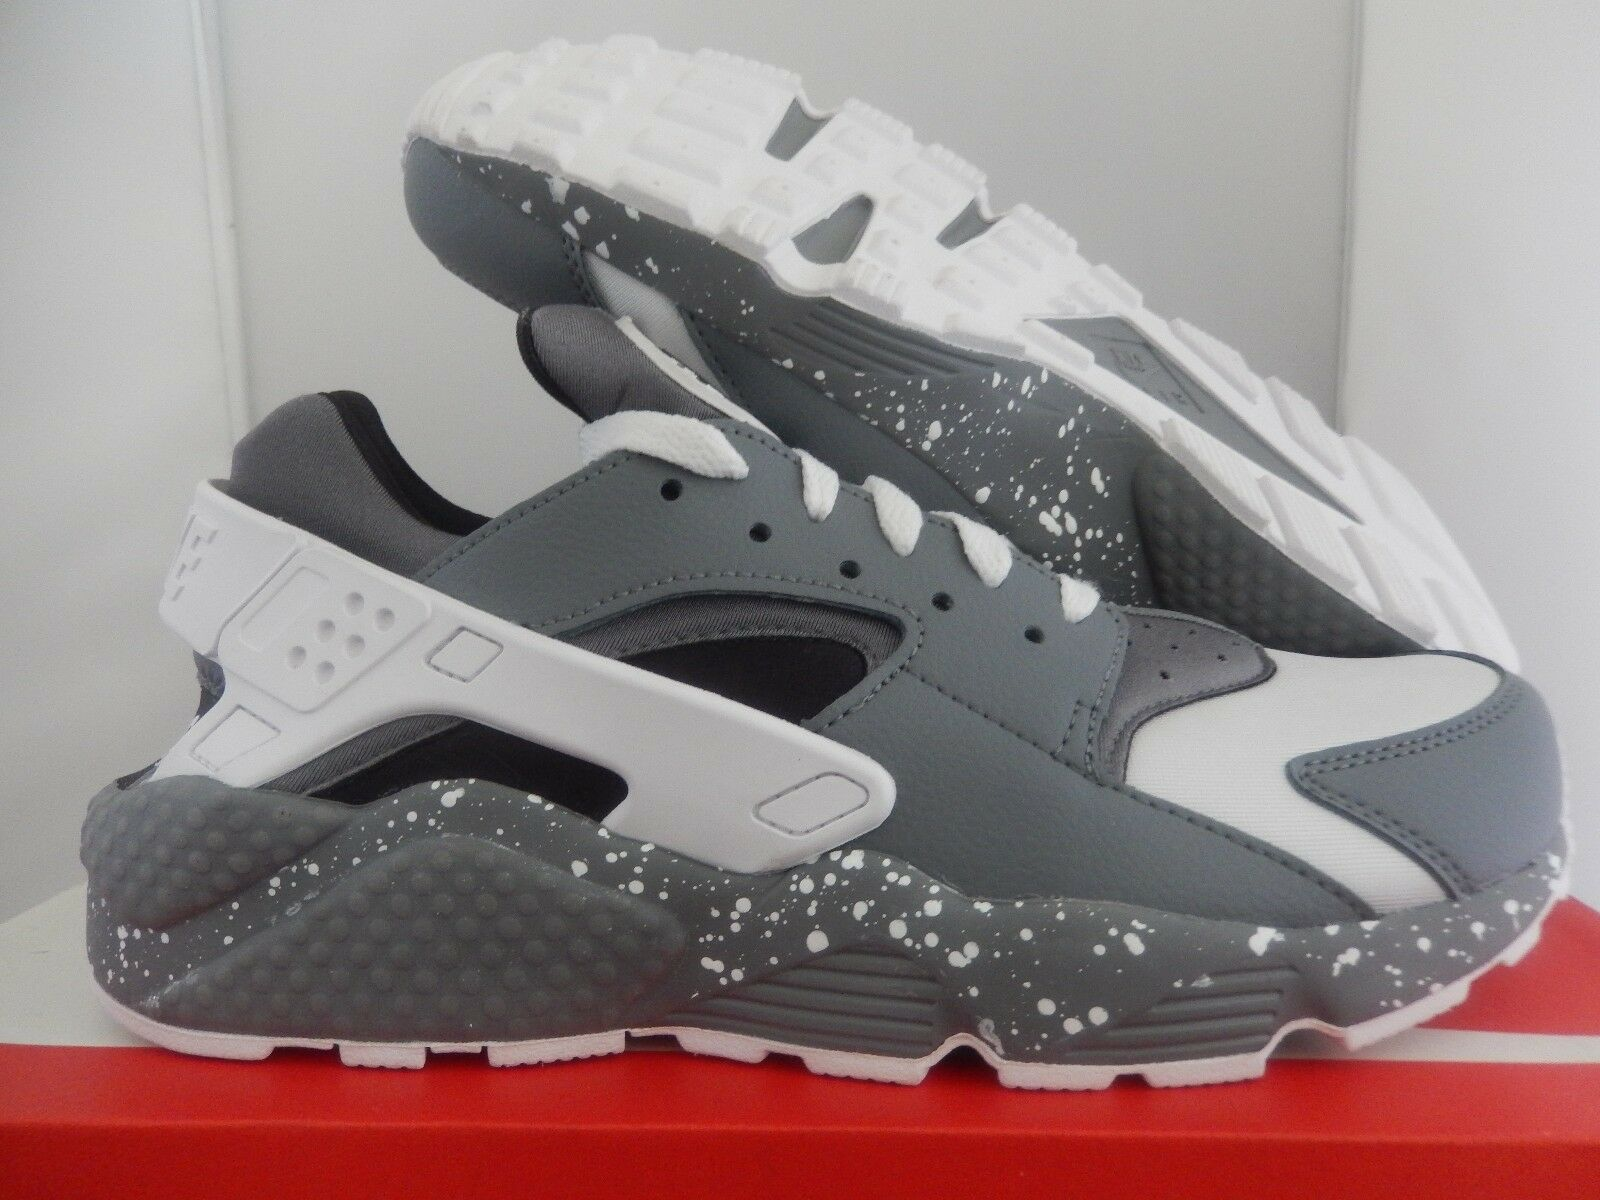 NIKE AIR HUARACHE ID GREY-WHITE-BLACK Price reduction best-selling model of the brand